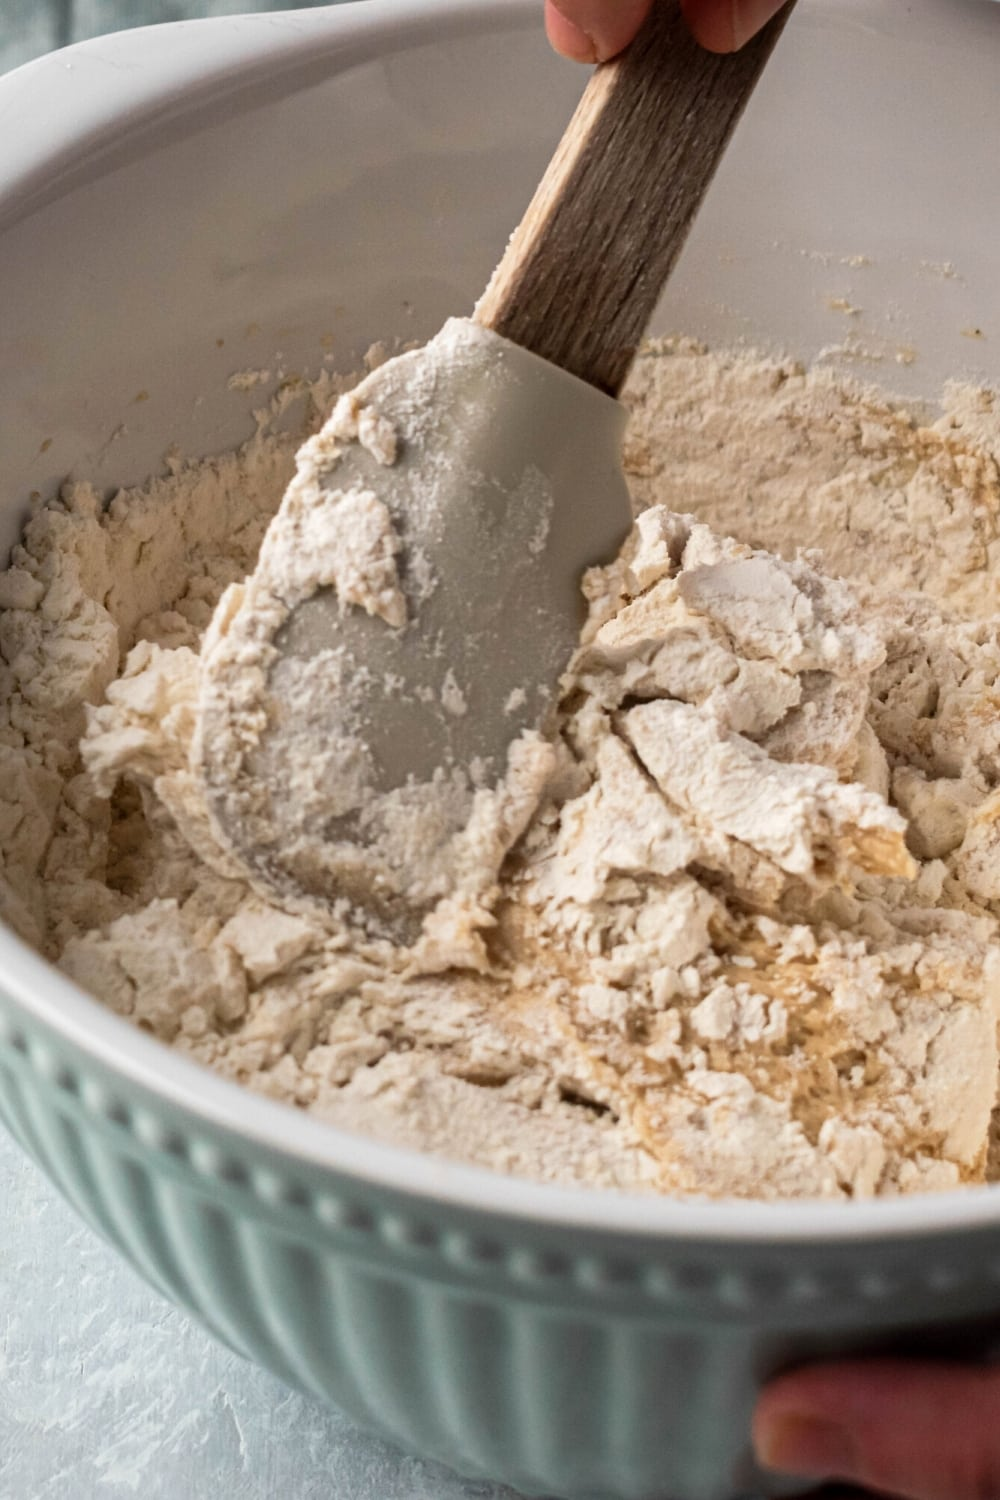 A bowl of cookie dough ingredients with a rubber spatula mixing them together.